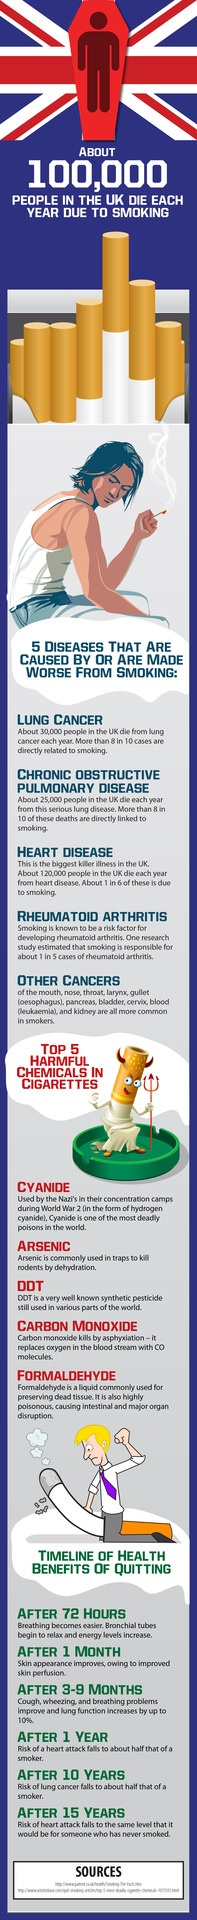 What are the Most Interesting Facts about Smoking Cigarettes!?